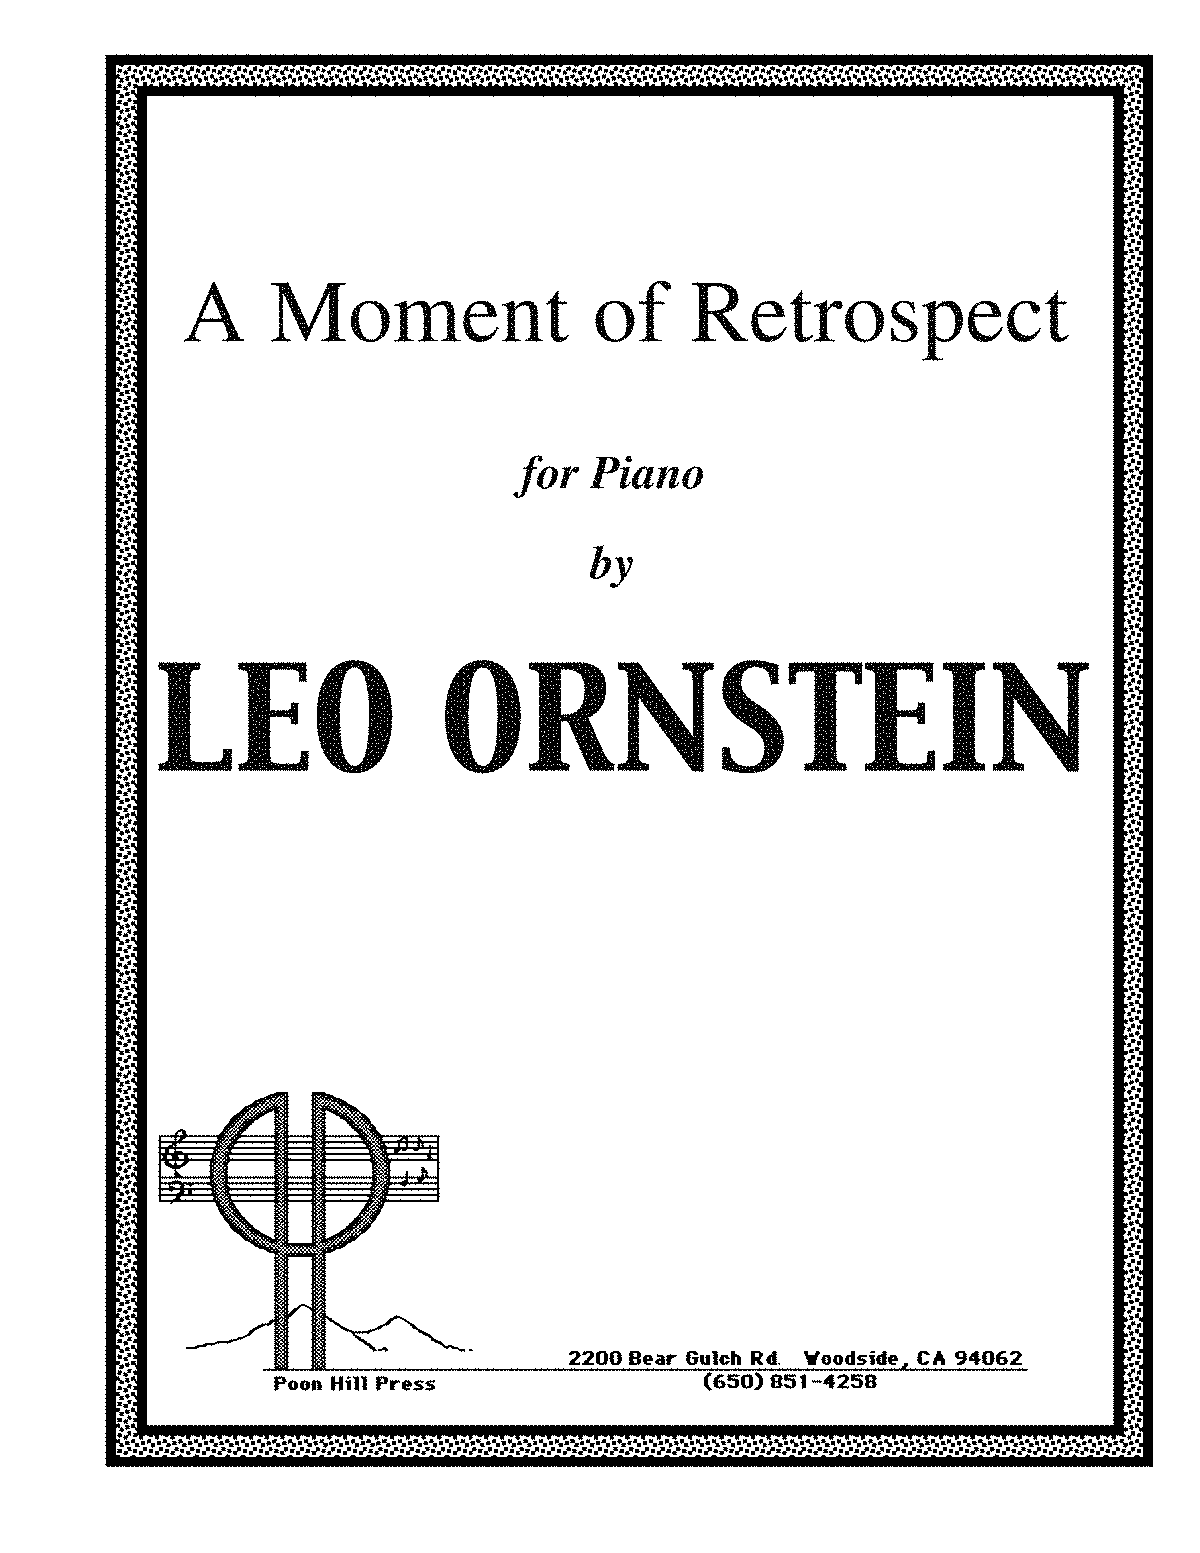 S156 - A Moment of Retrosp.pdf